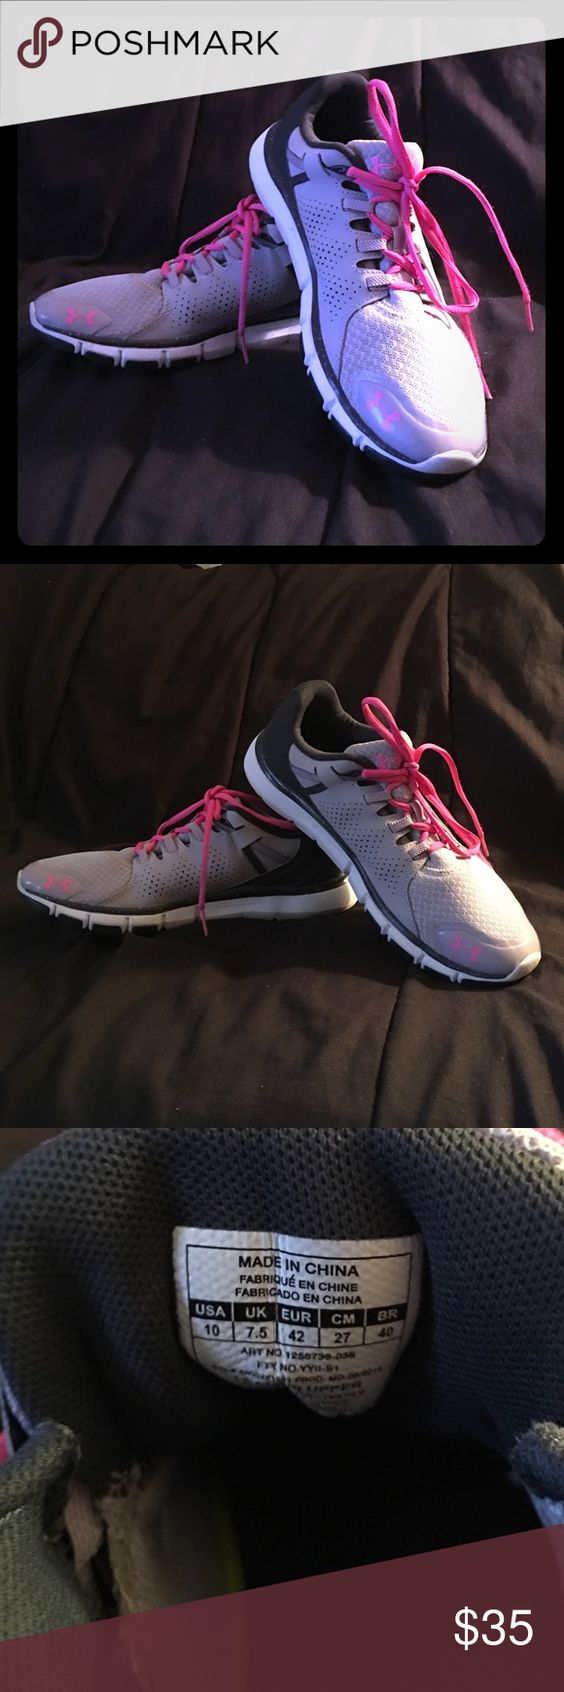 Under Amour Athletic Shoes These tennis shoes are great for walking or running only worn a couple of times Under Armour Shoes Athletic Shoes